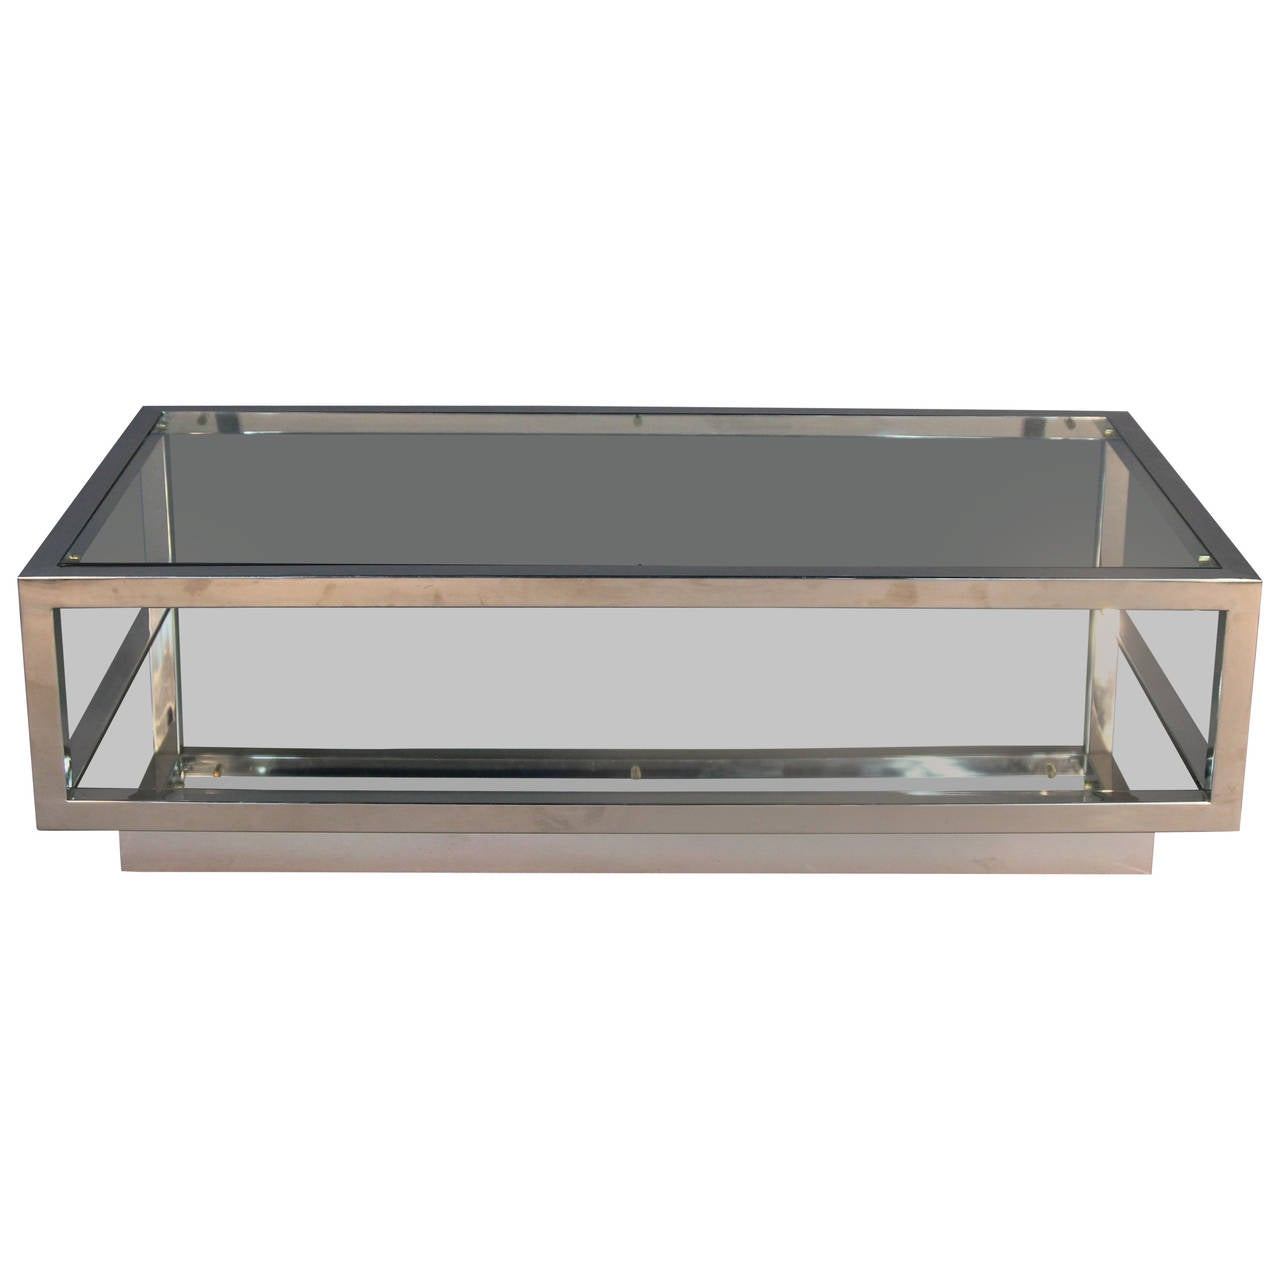 Chrome and glass top coffee table with mirrored shelf Glass coffee table tops